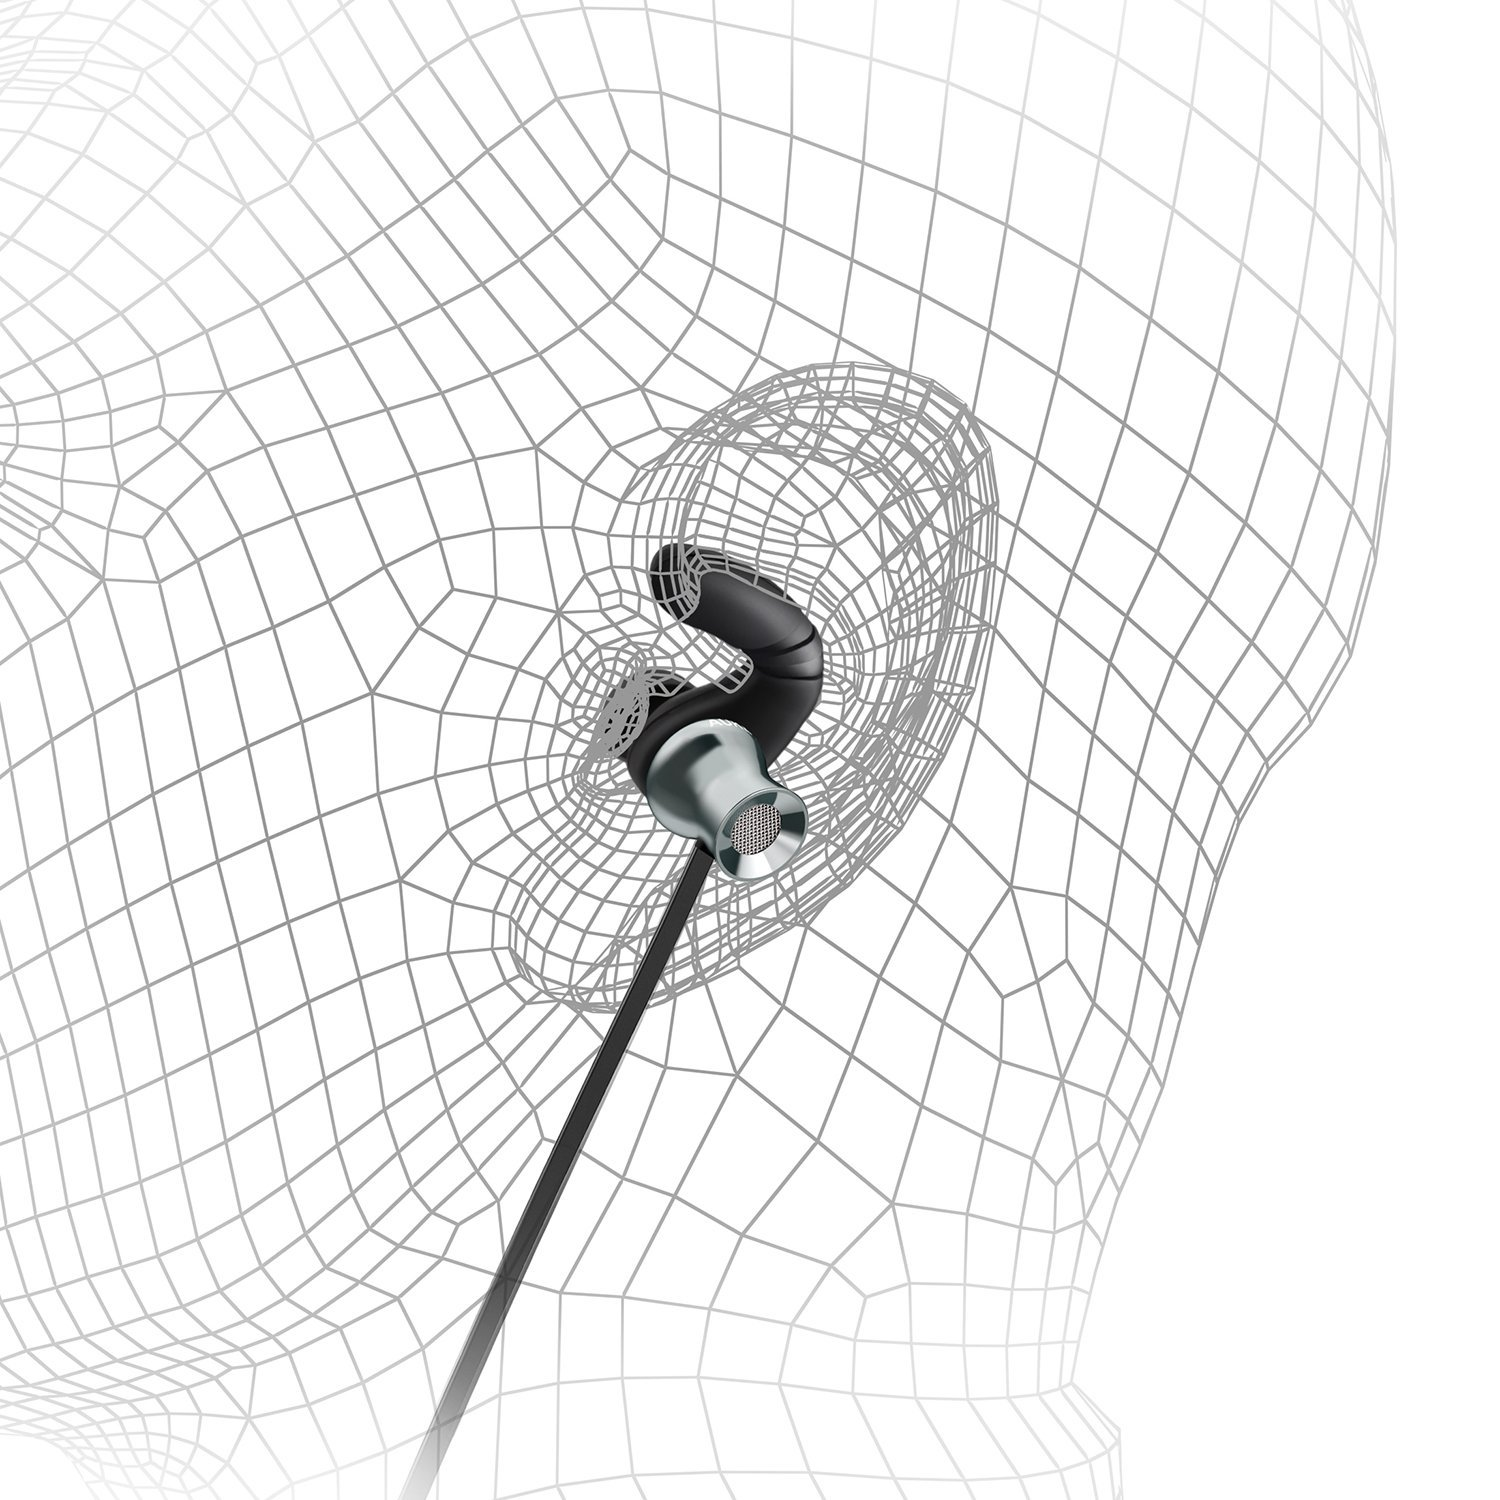 Aukey Ep B37 Bluetooth Wireless Earbuds With Built In